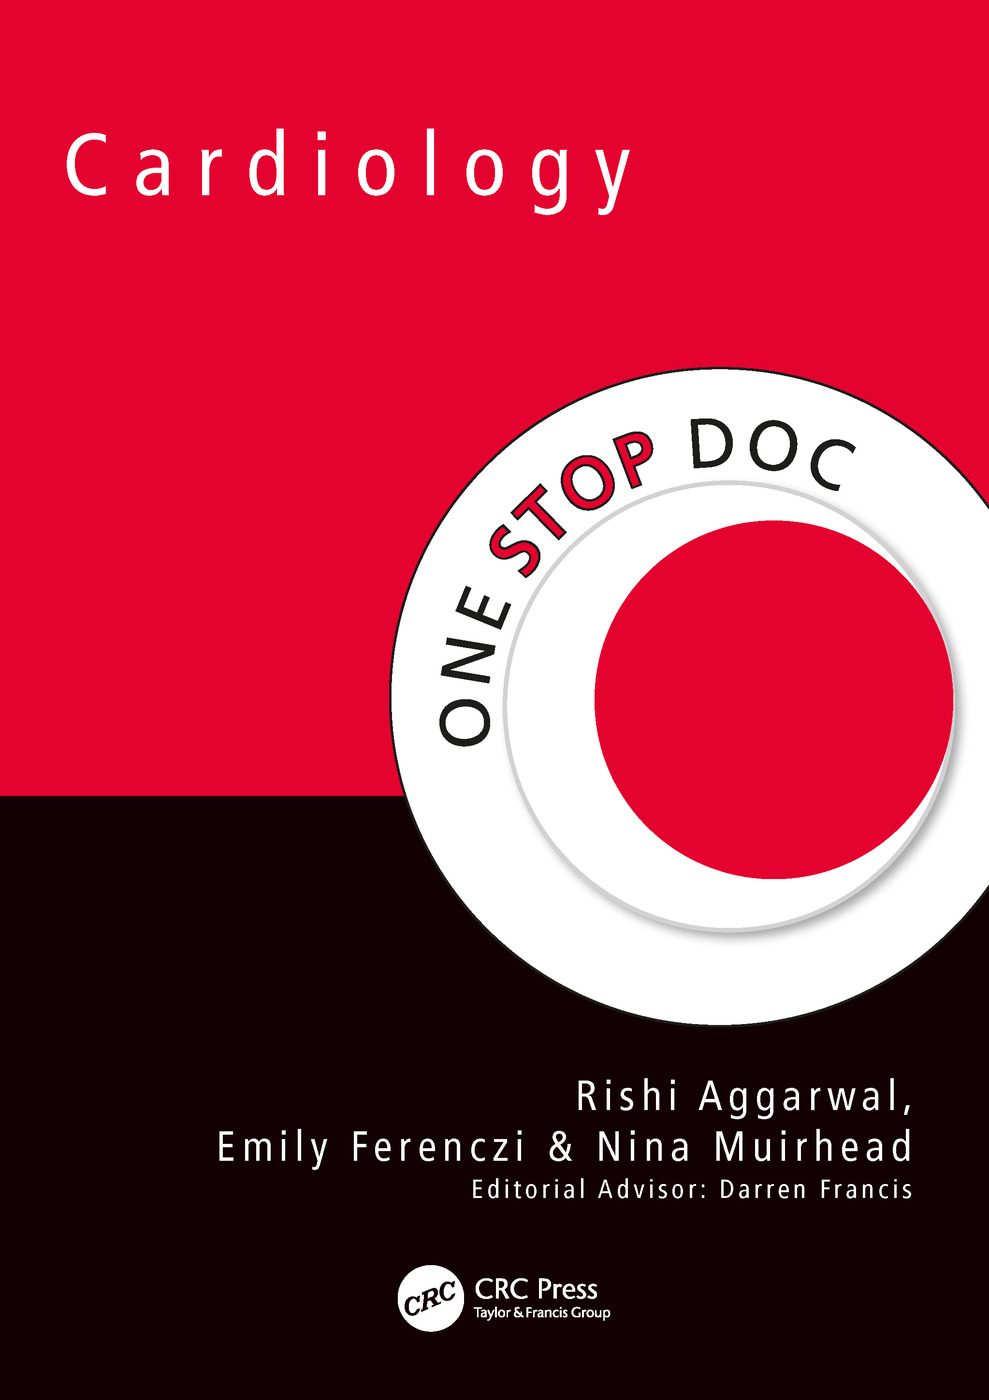 One Stop Doc Cardiology